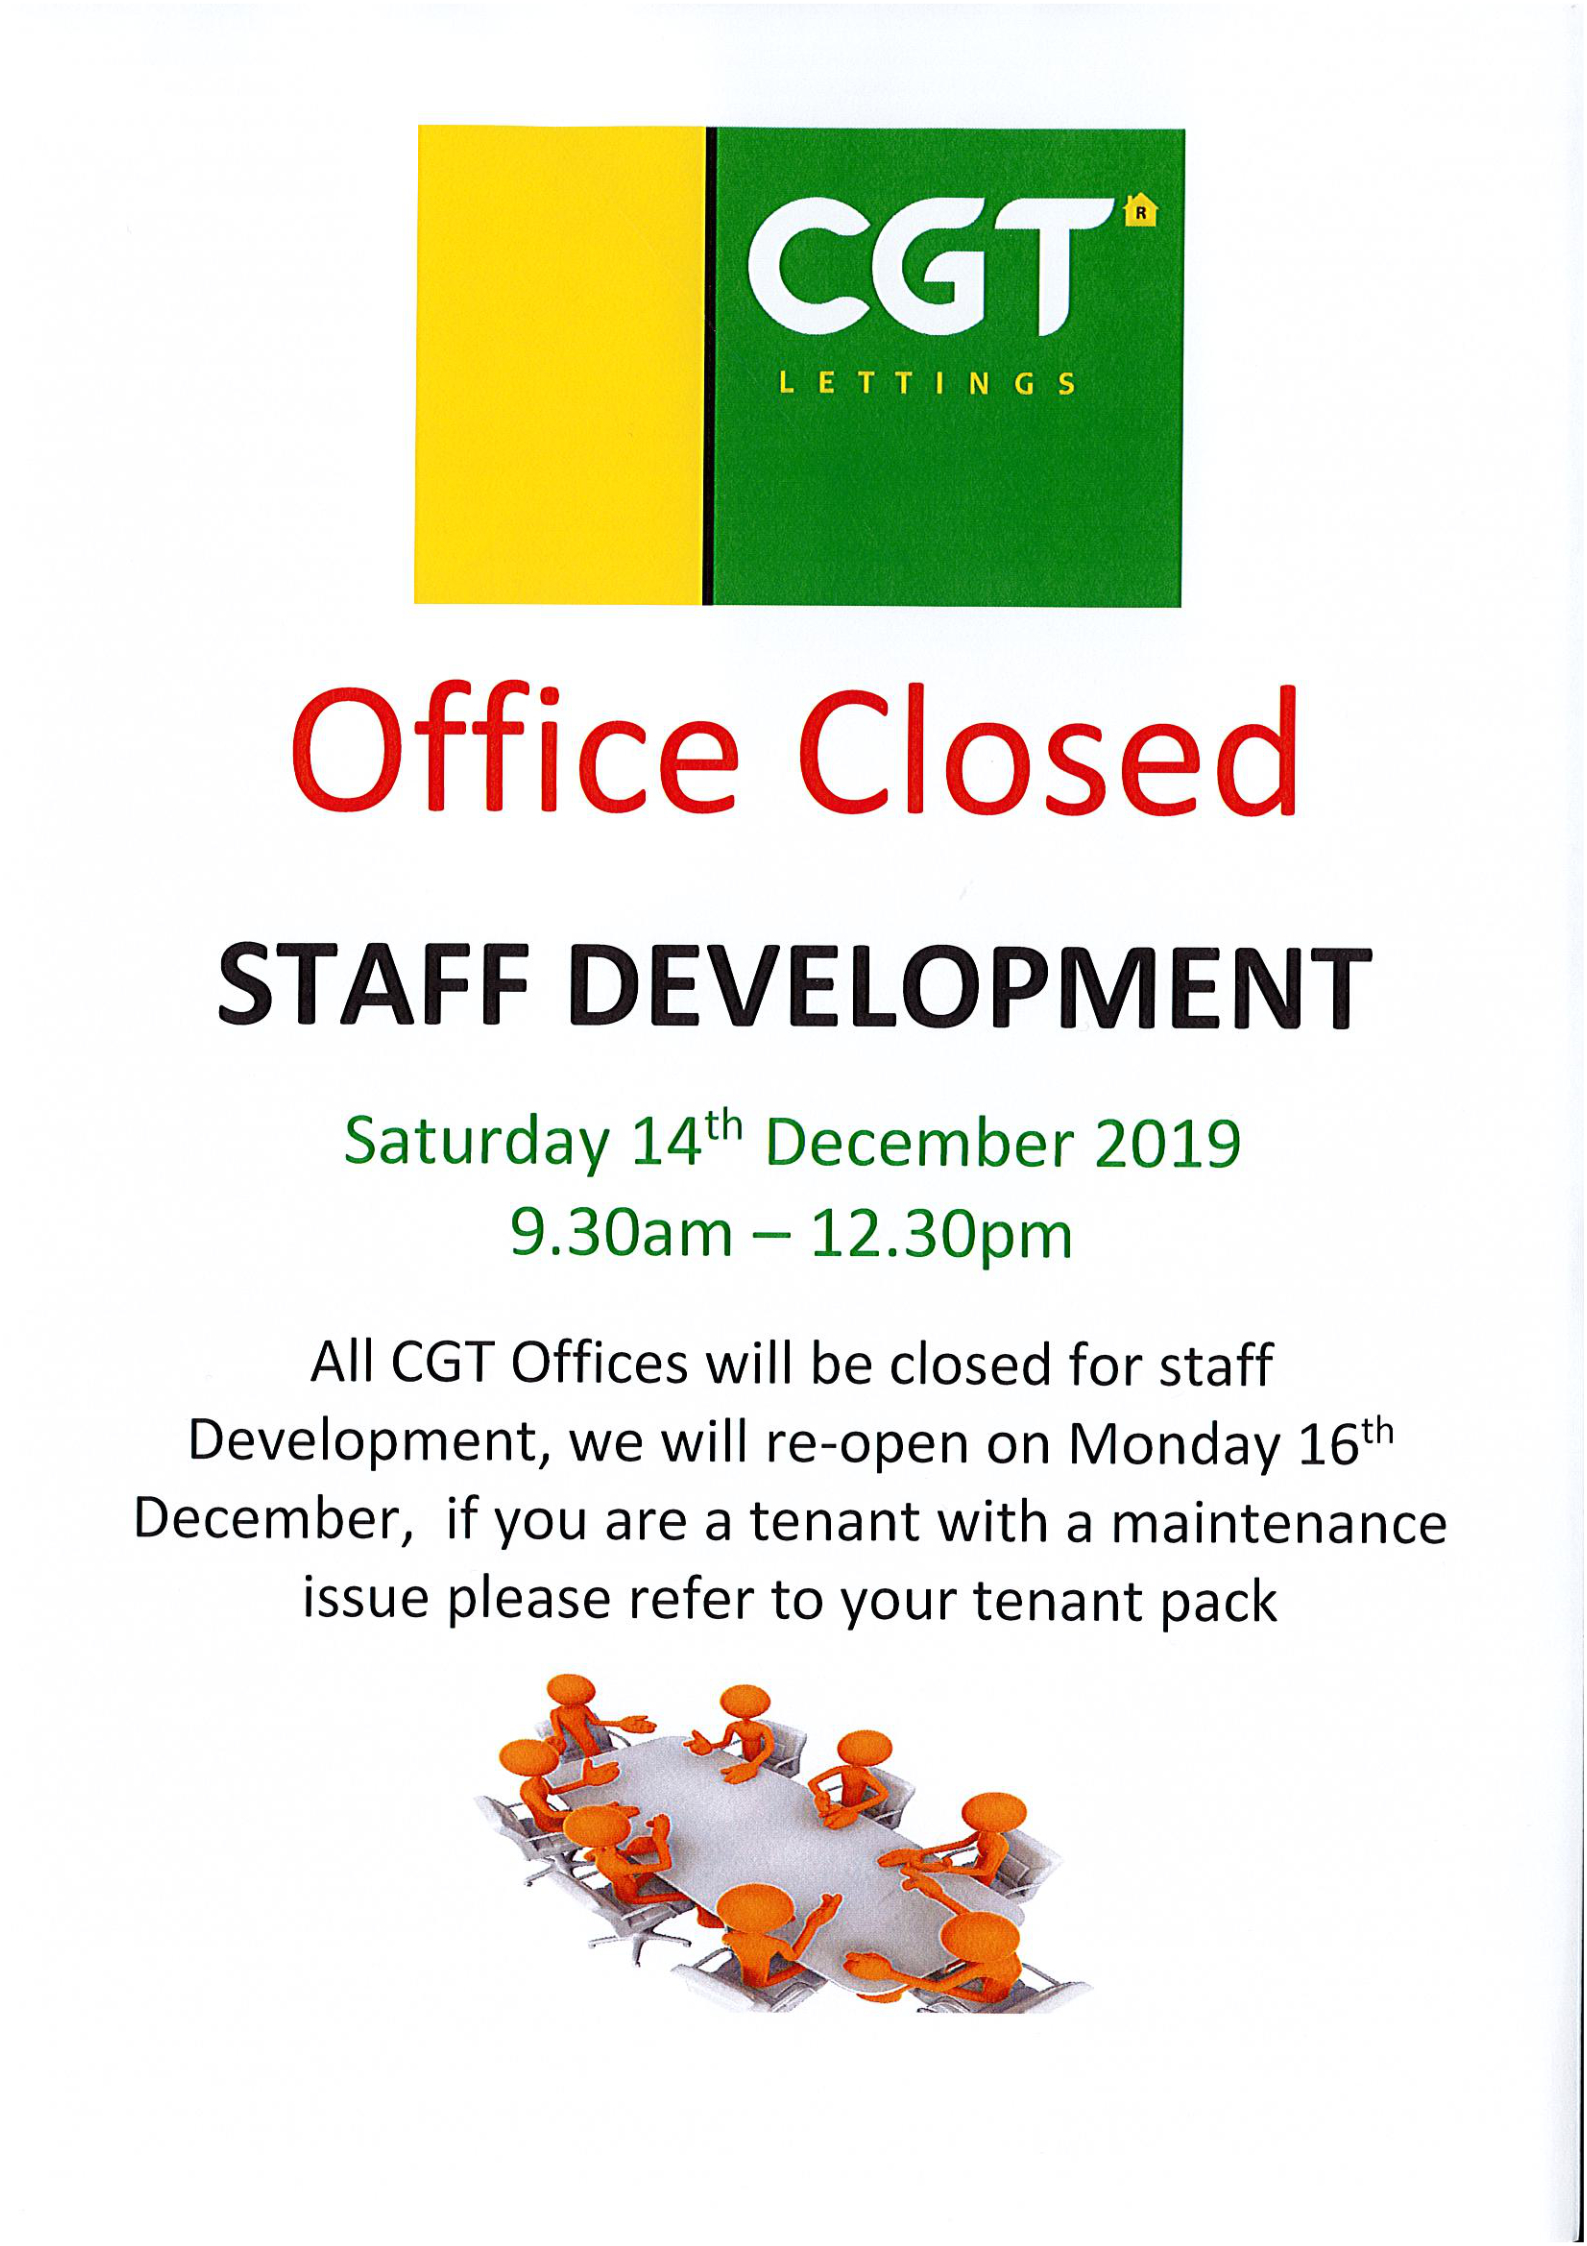 Office Closed - Staff Development - Sat 14th December 9:30am to 12.30pm